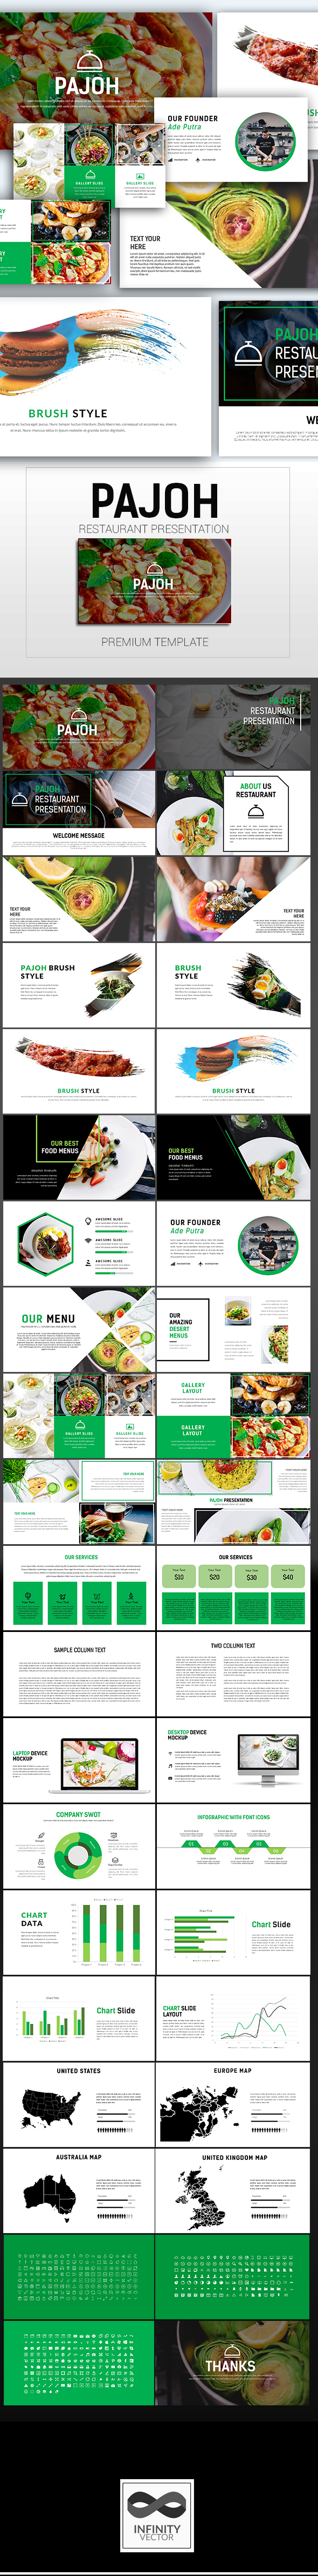 GraphicRiver Pajoh Presentation Google Slide 21117422